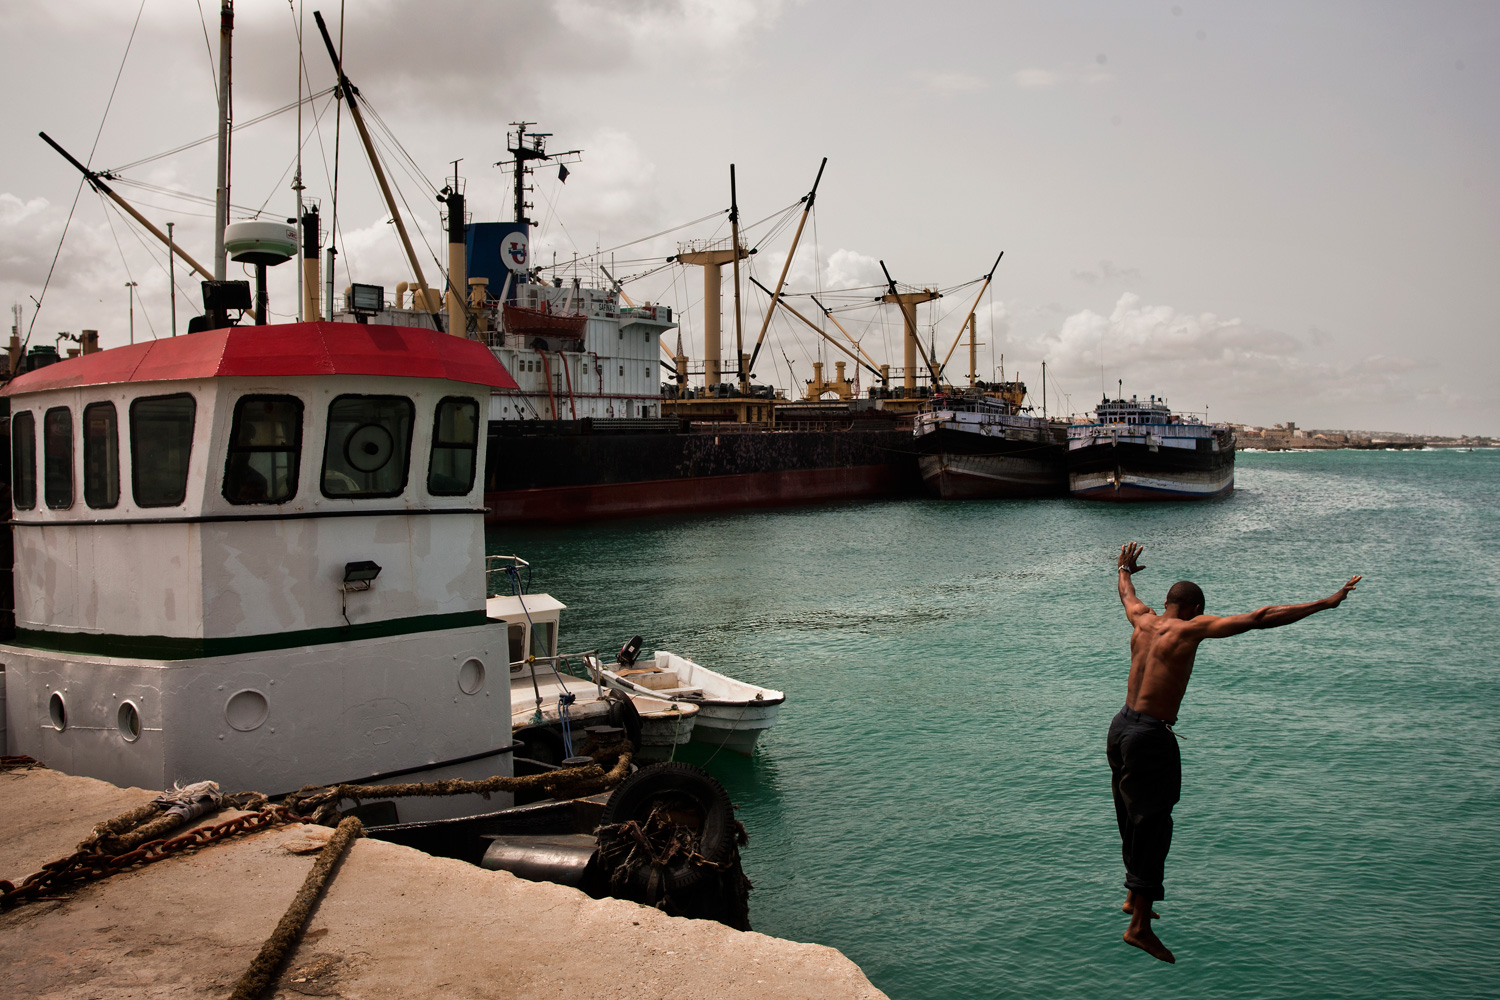 A Somali man jumps into the water at the port in Mogadishu.